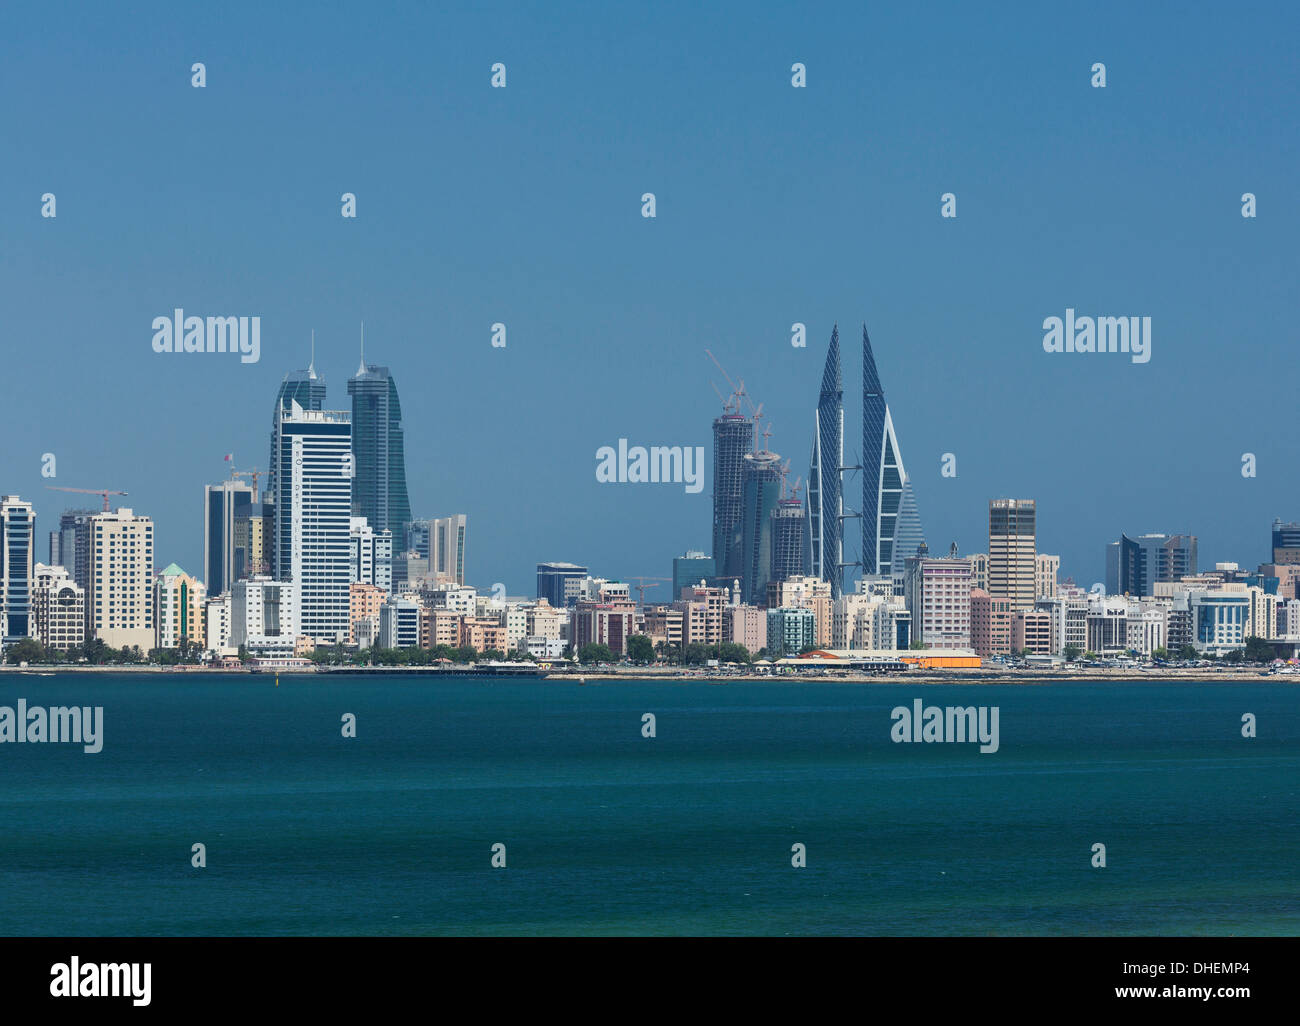 Manama, Bahrain, Middle East - Stock Image